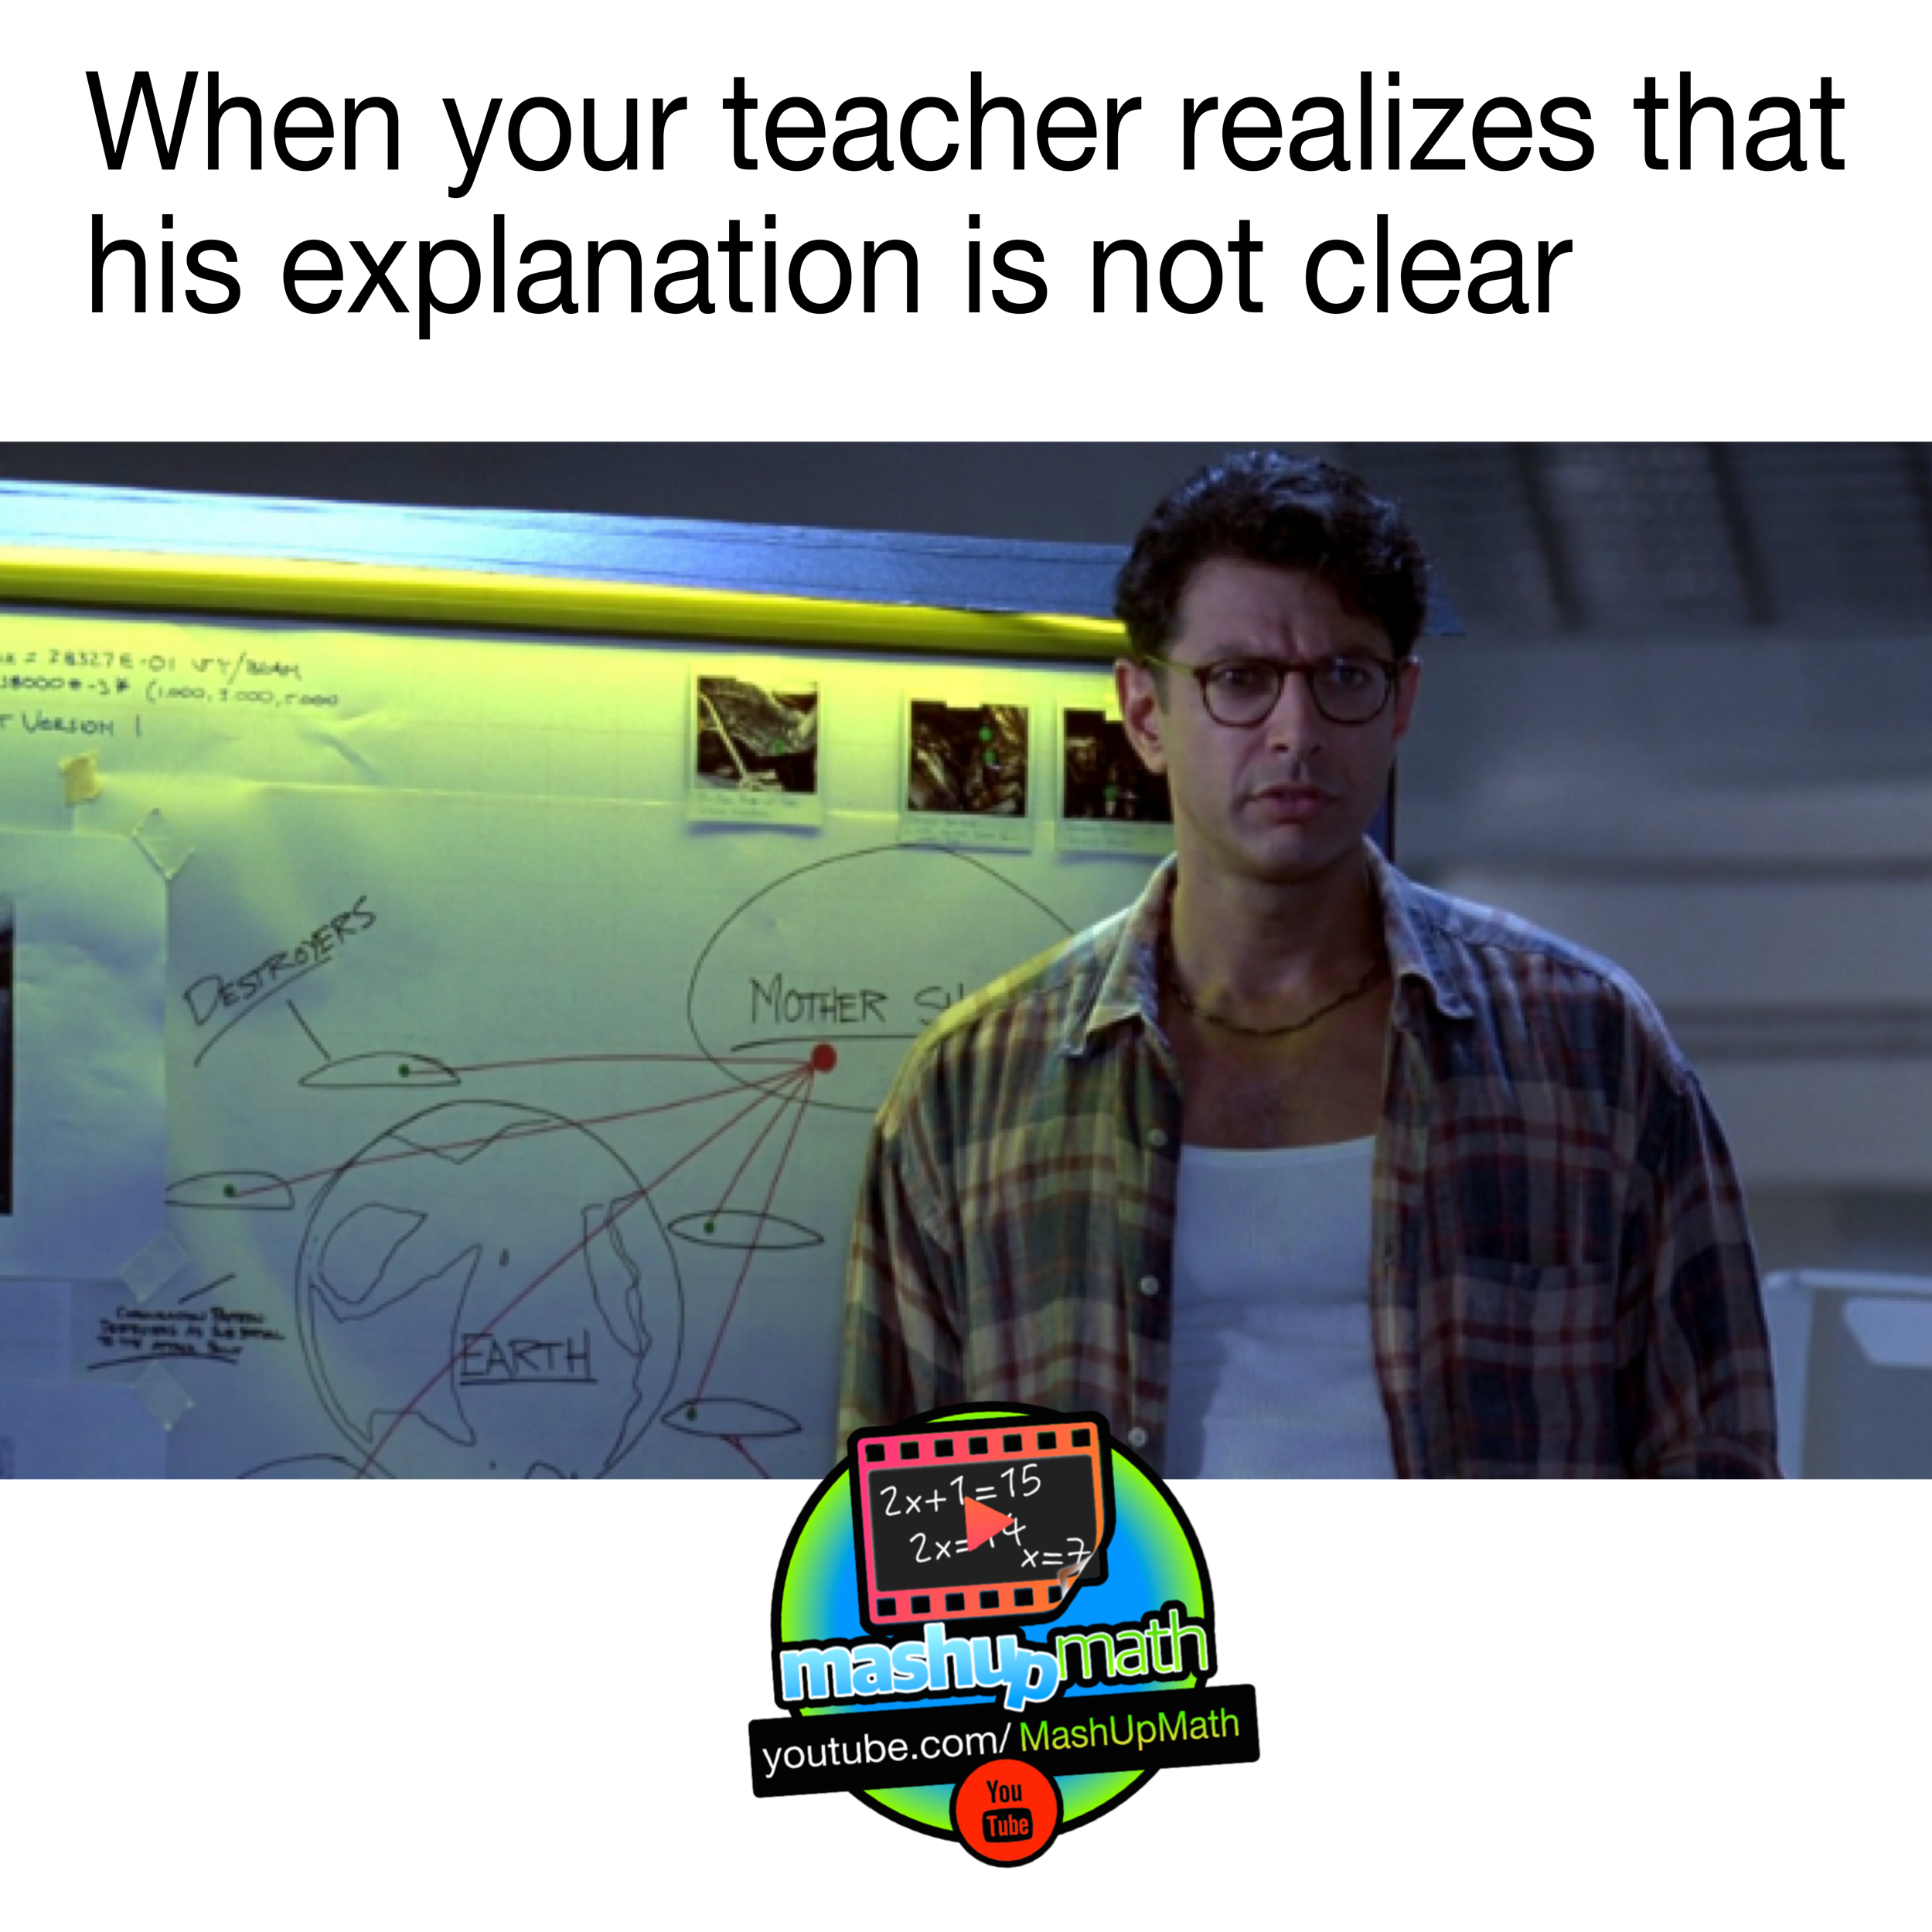 Math memes and jokes when your teacher realizes that the students are just not understanding